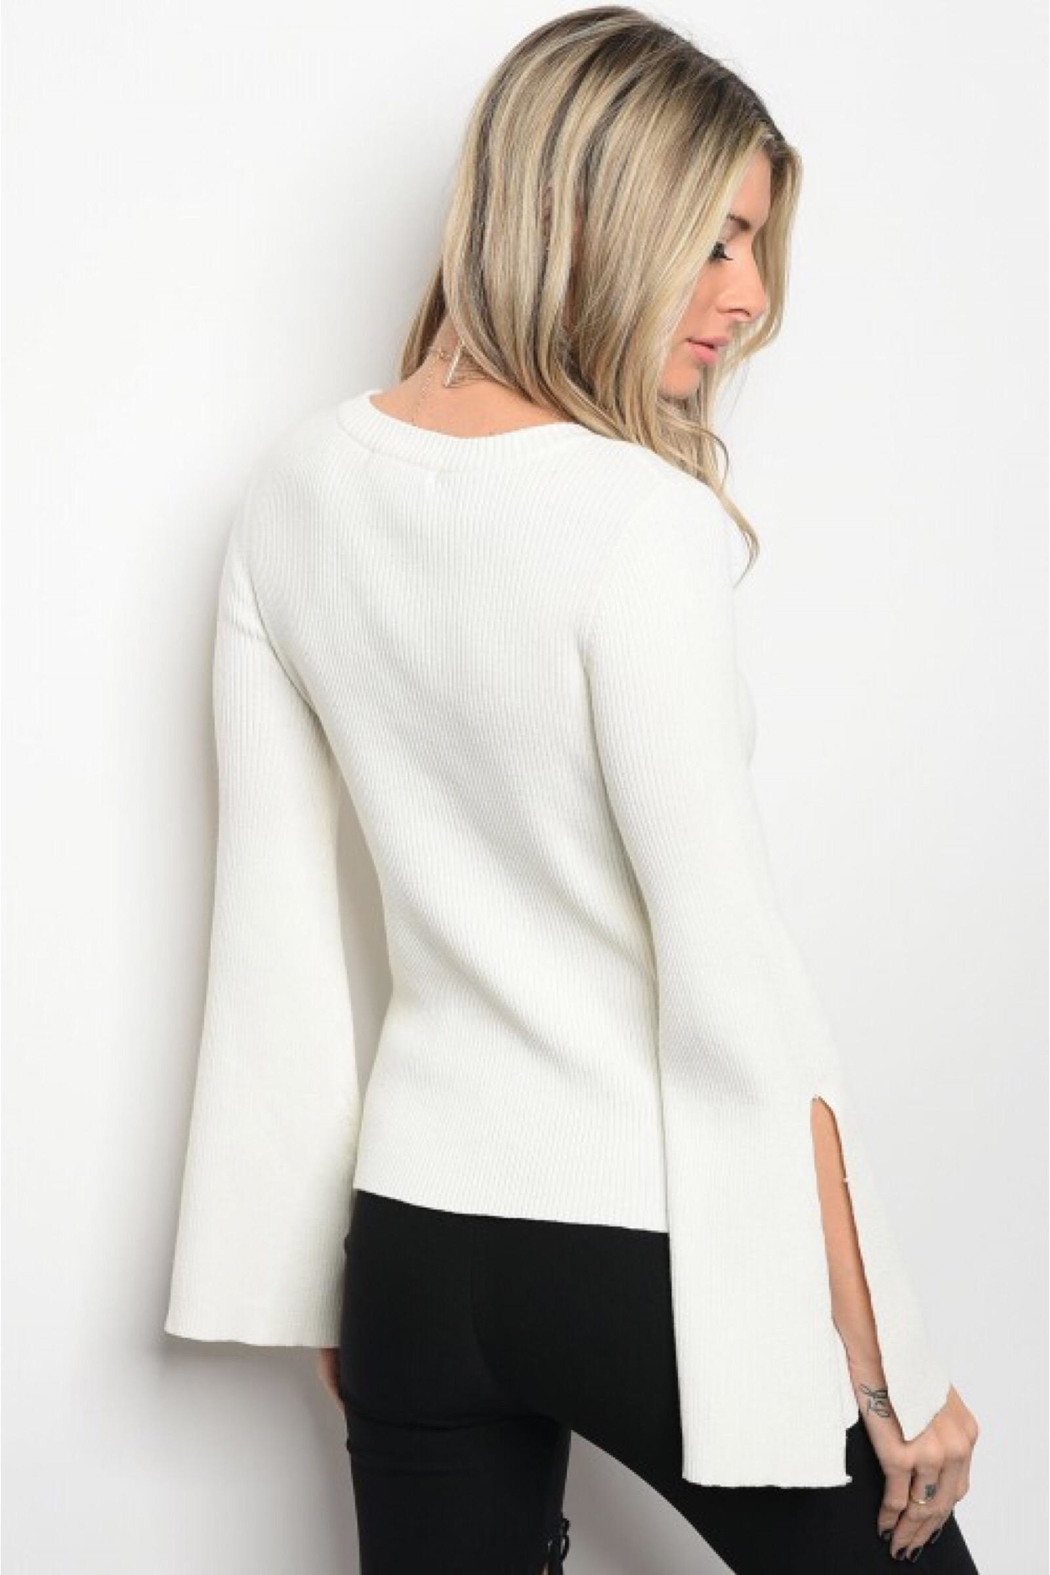 People Outfitter Off-White Bell Sleeves Sweater - Main Image